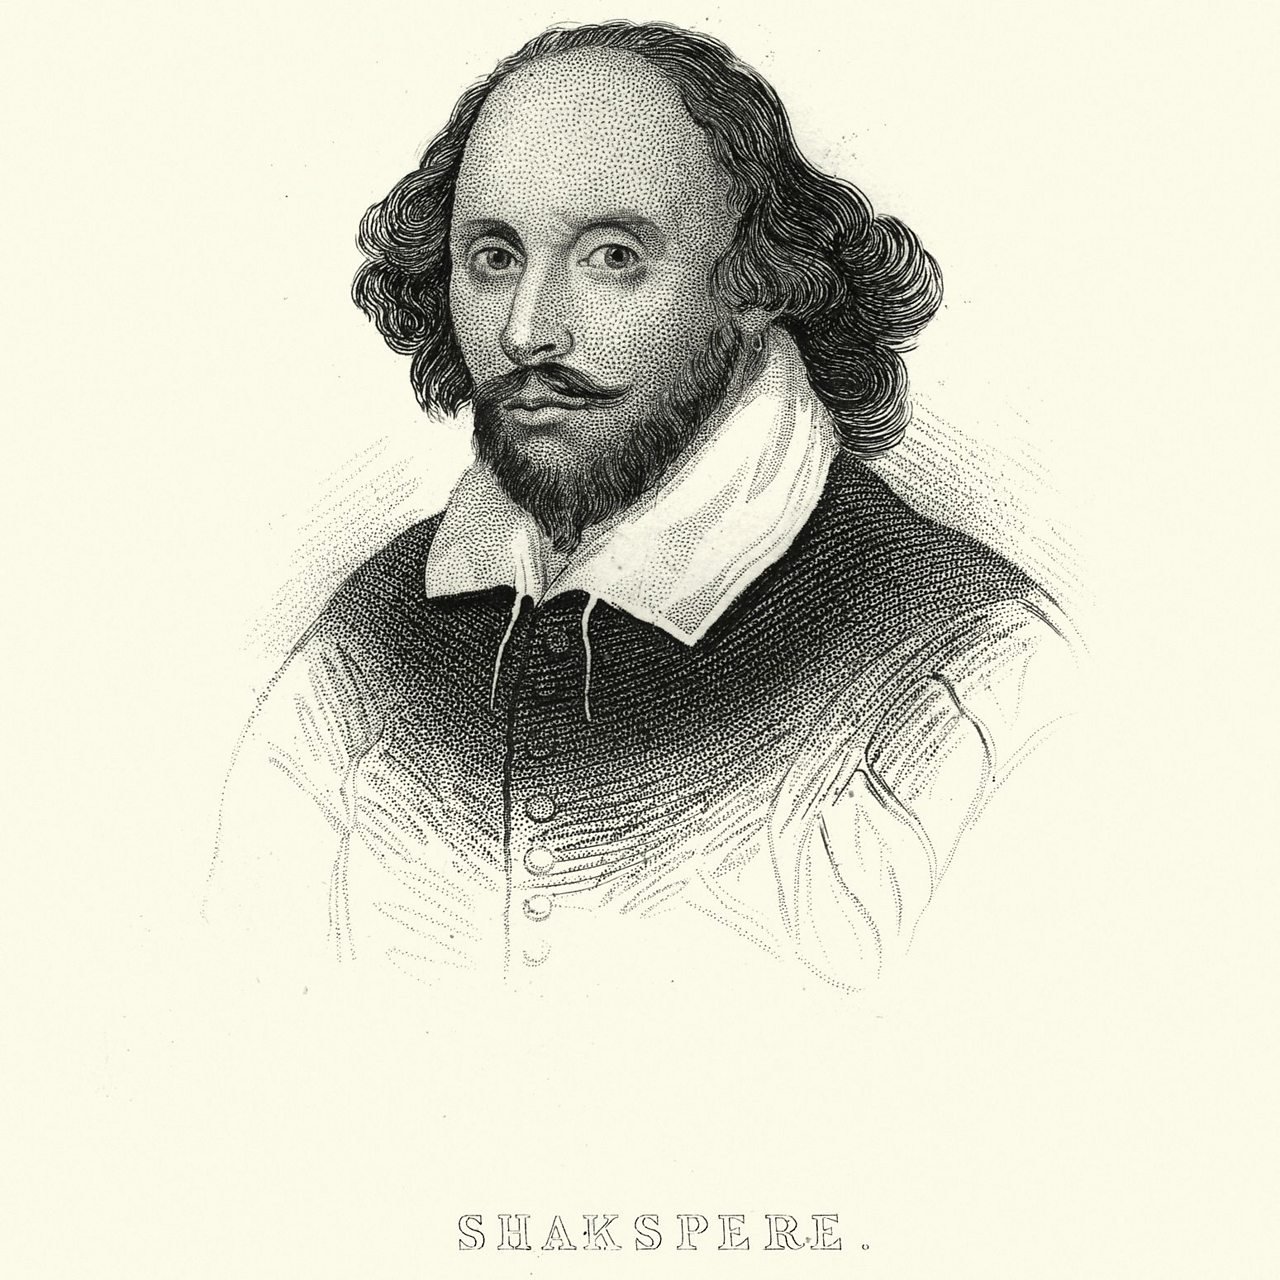 A drawing of William Shakespeare with the word 'Shakspere' underneath.